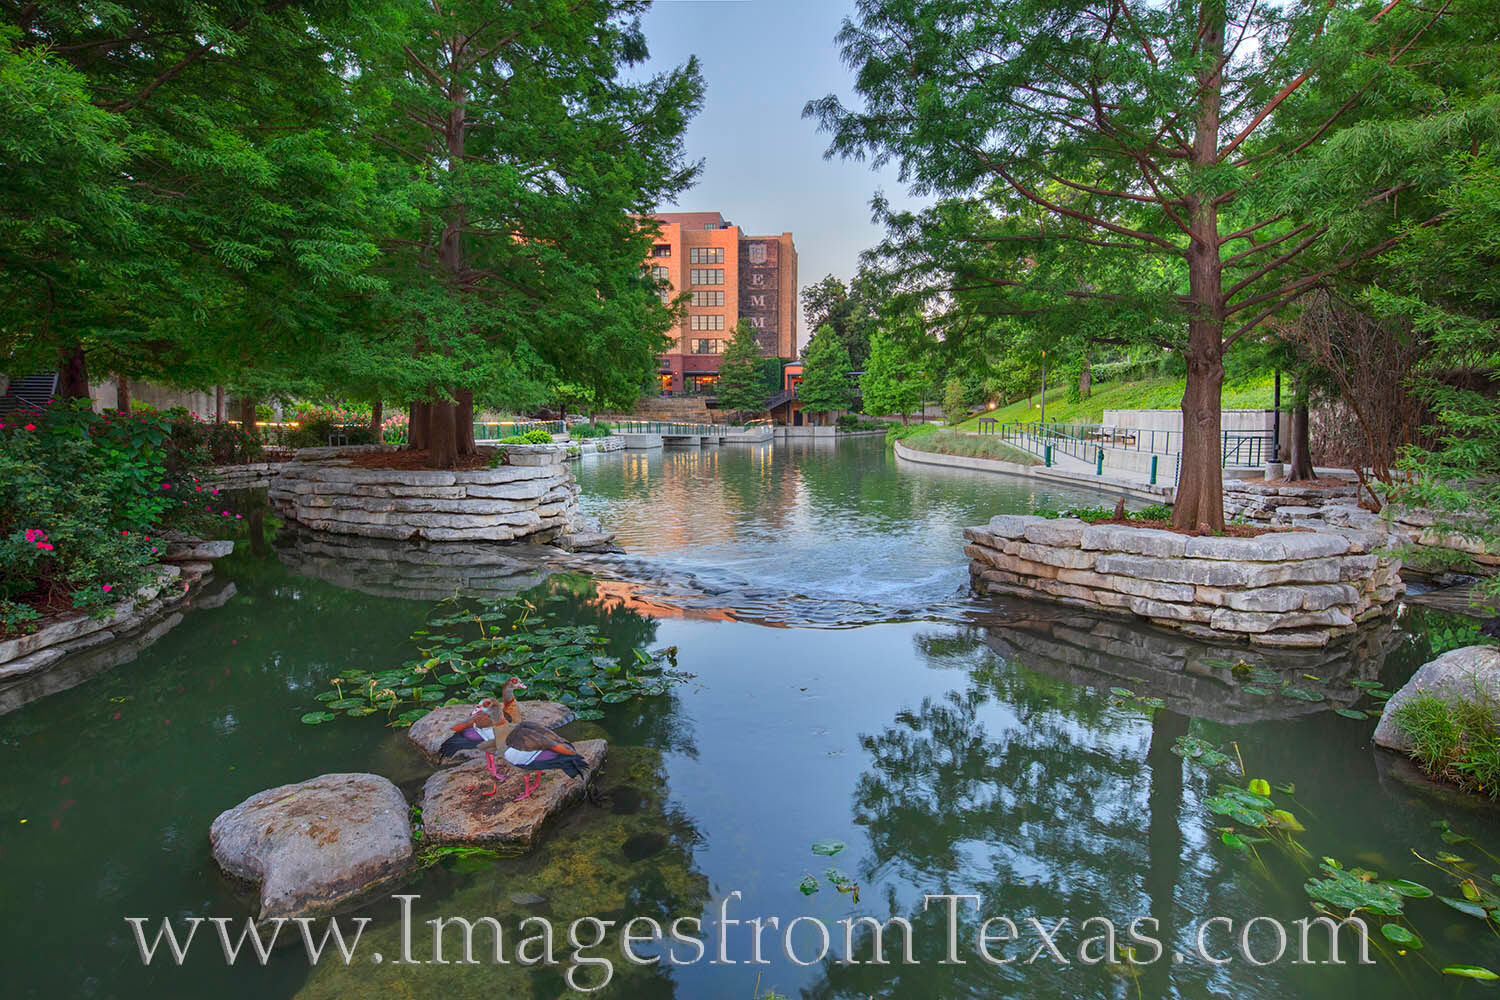 Two ducks wathed me as I photographed them enjoying the cool morning in the Pearl District near downtown San Antonio. This area...